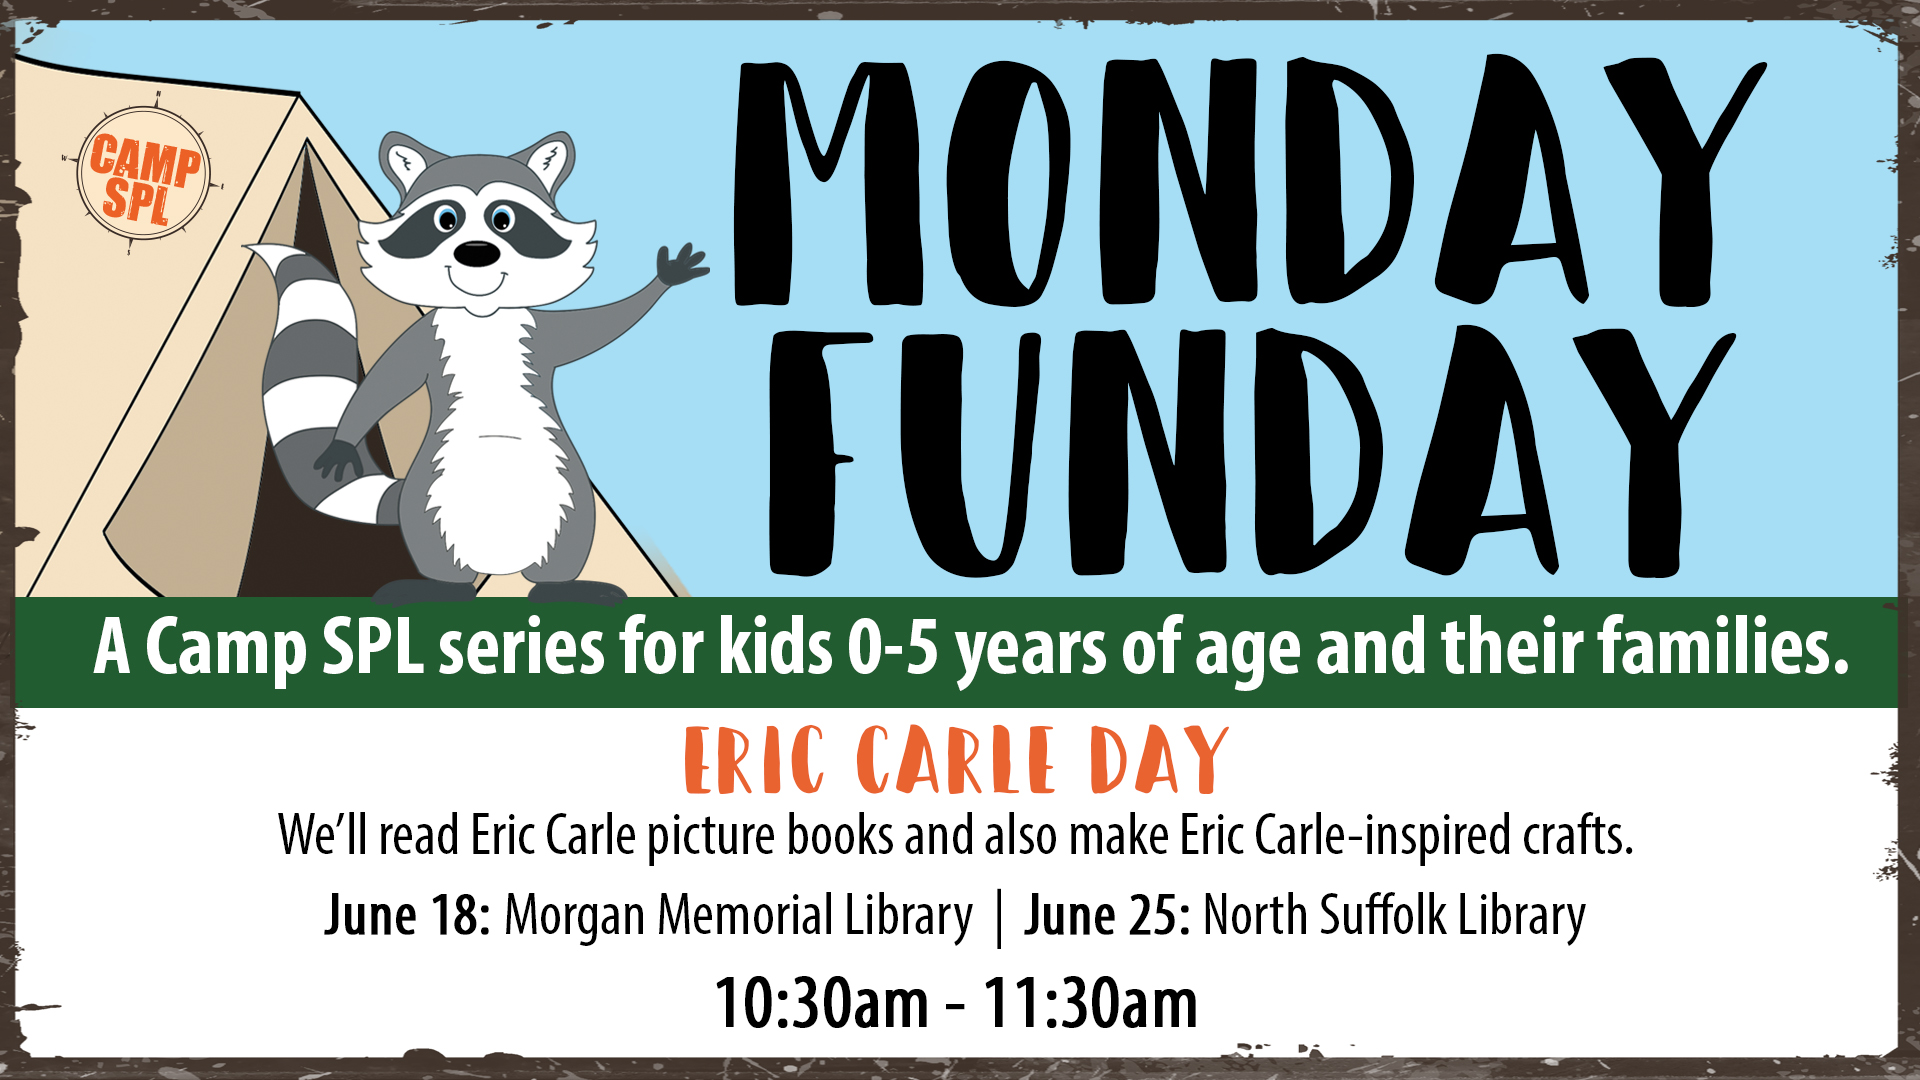 Camp Monday Funday: Eric Carle Day